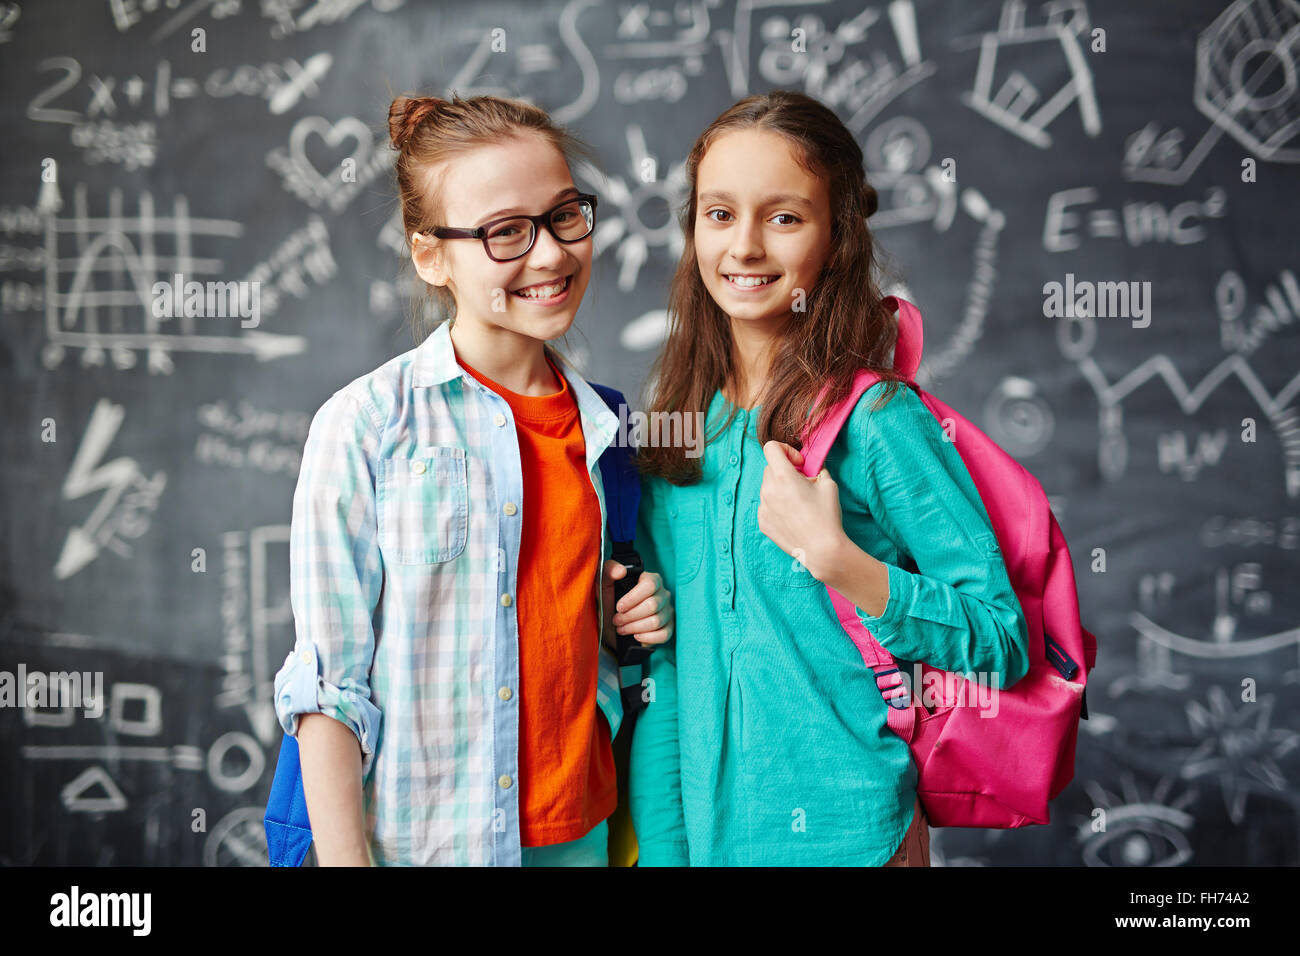 Adorable schoolmates with backpacks looking at camera Stock Photo